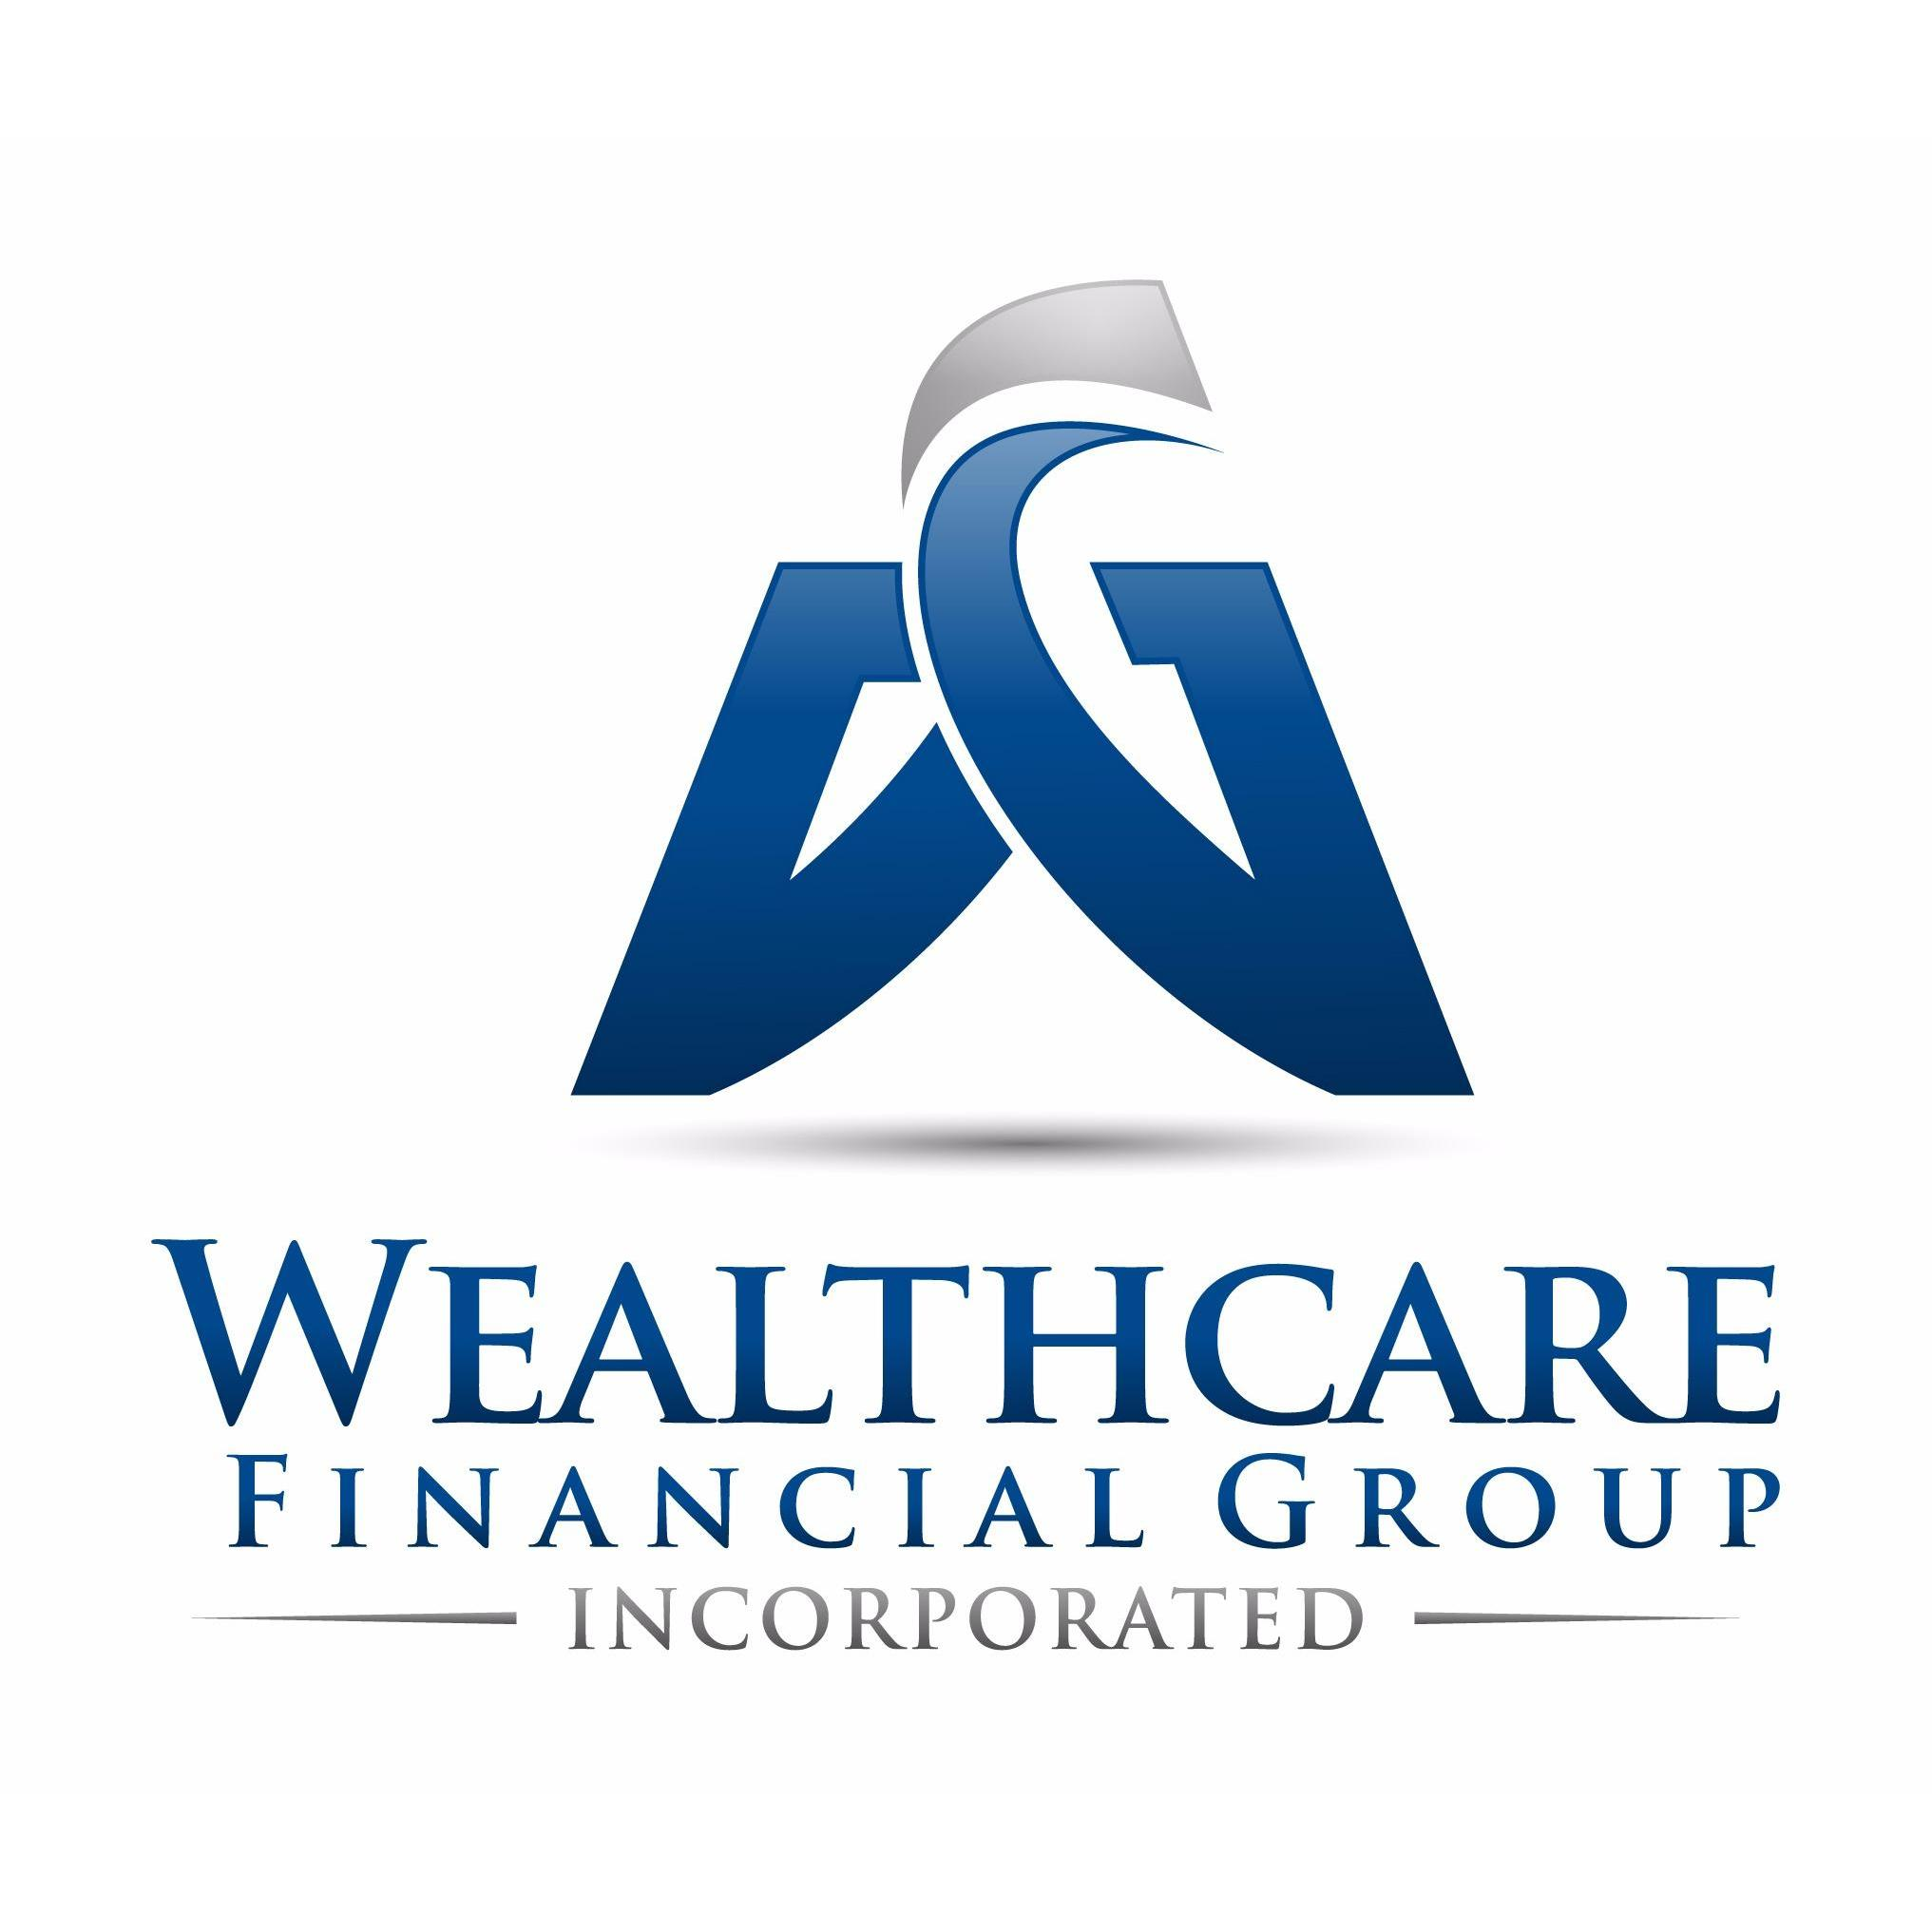 Wealthcare Financial Group, Inc.